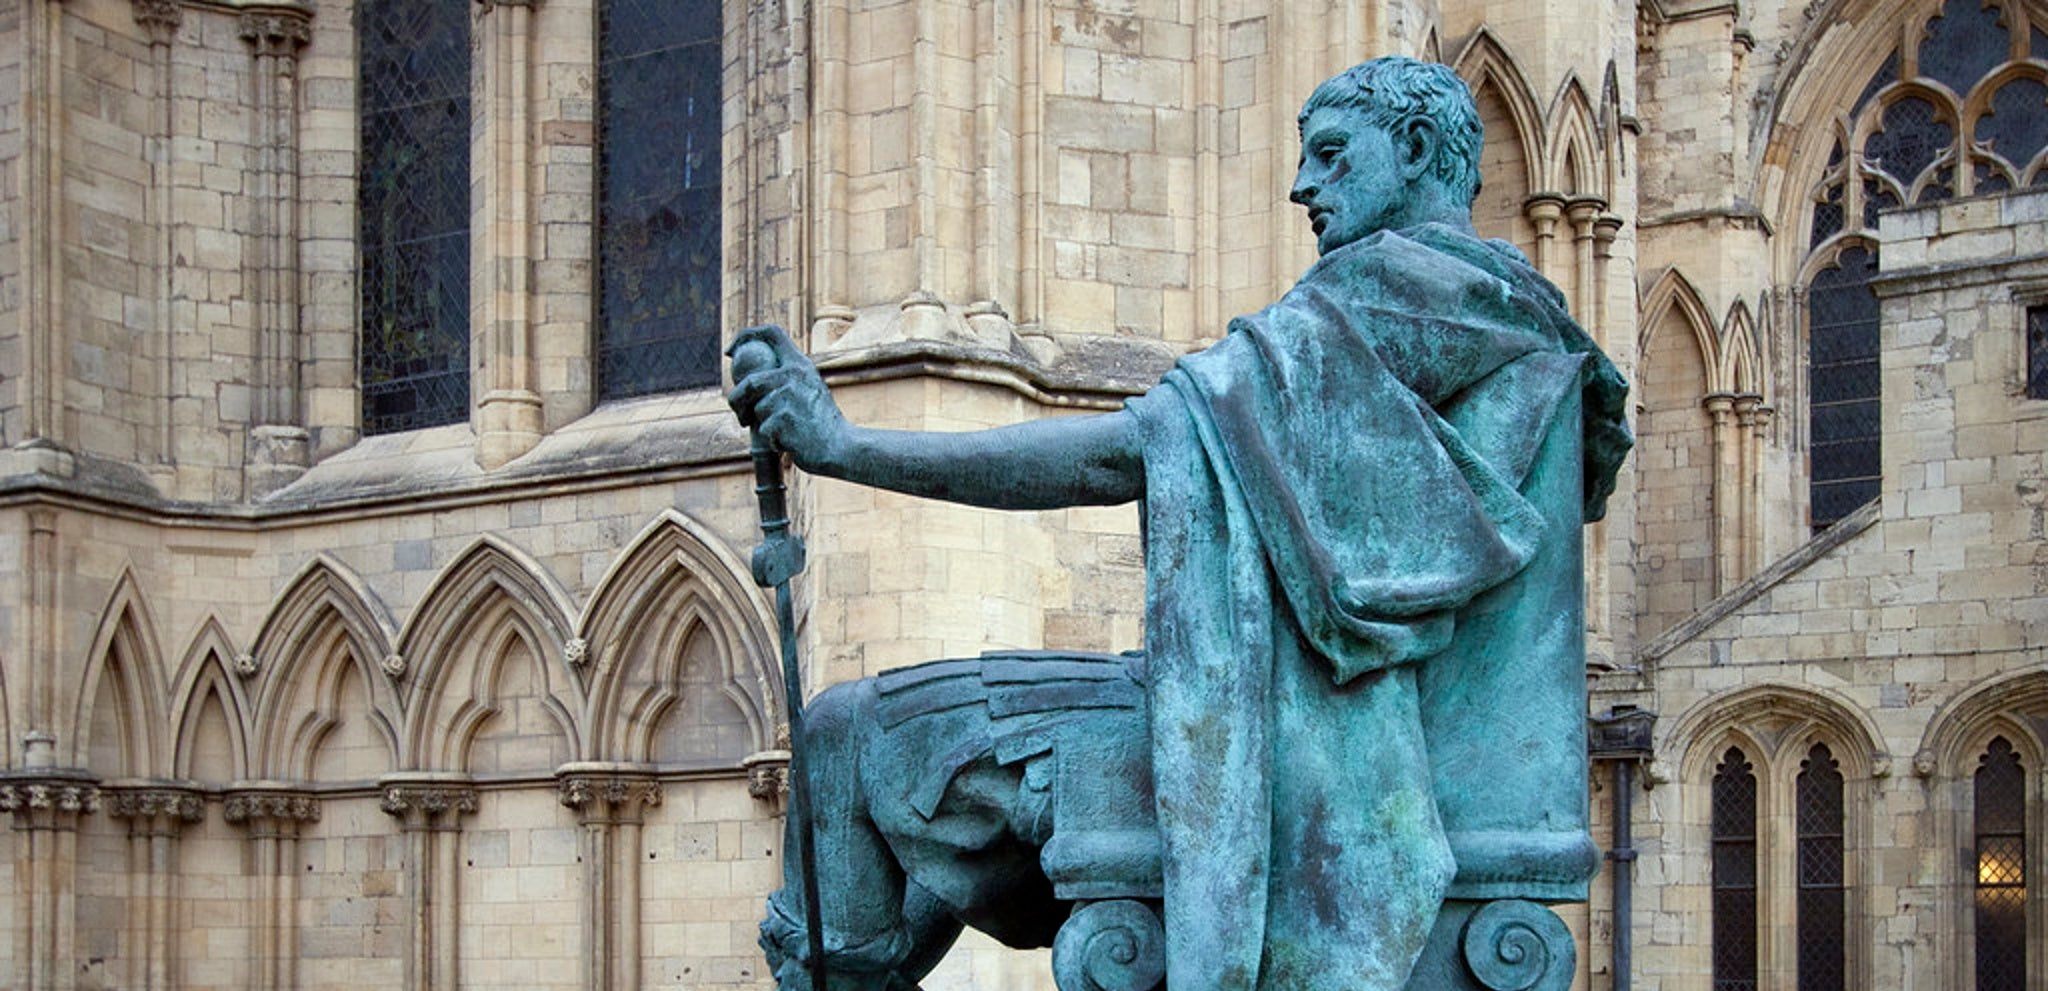 A statue of Constantine the Great in York, UK.